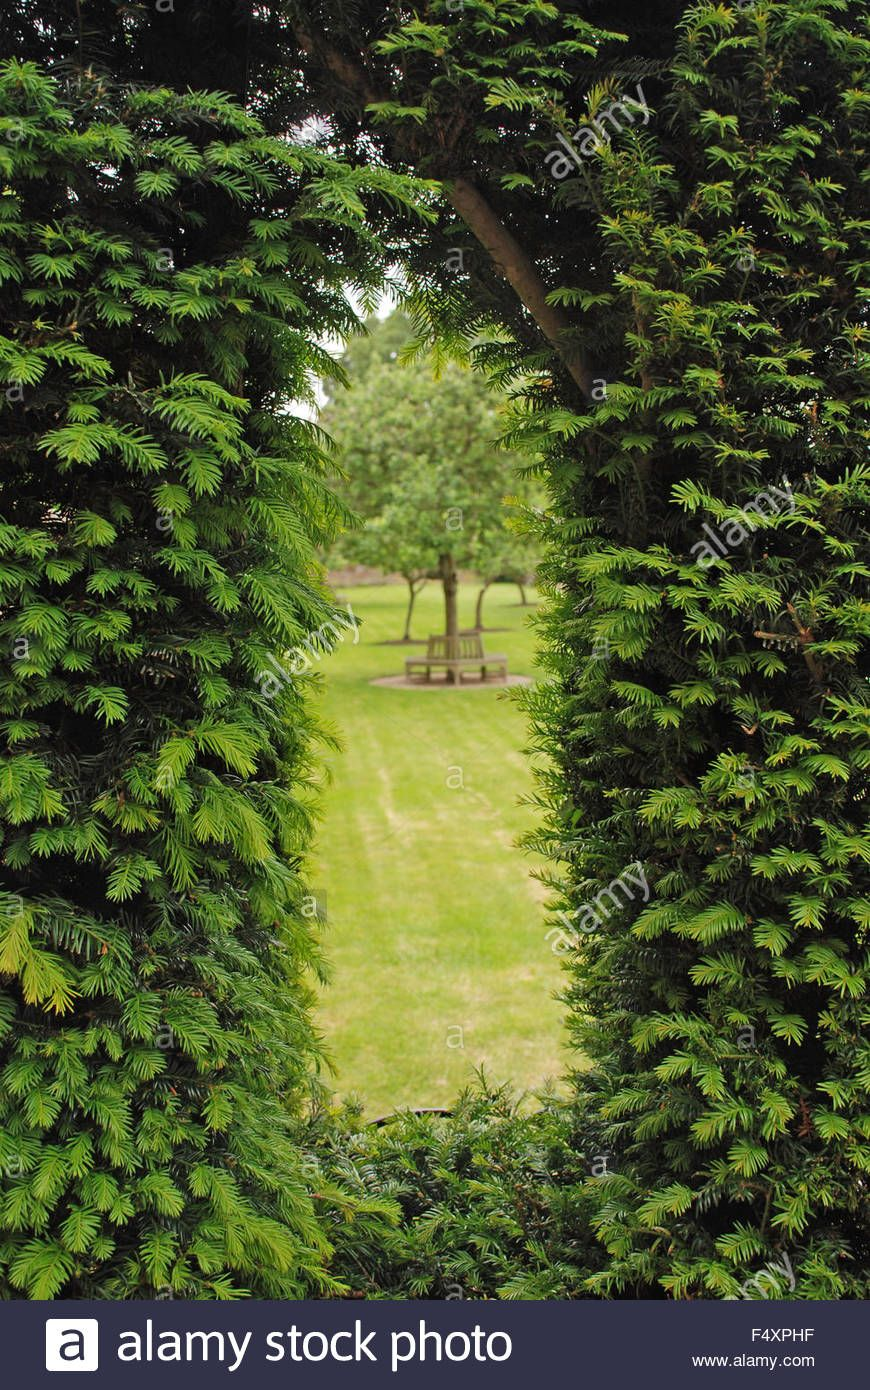 Download this stock image: Window in trimmed hedge topiary wall at ...